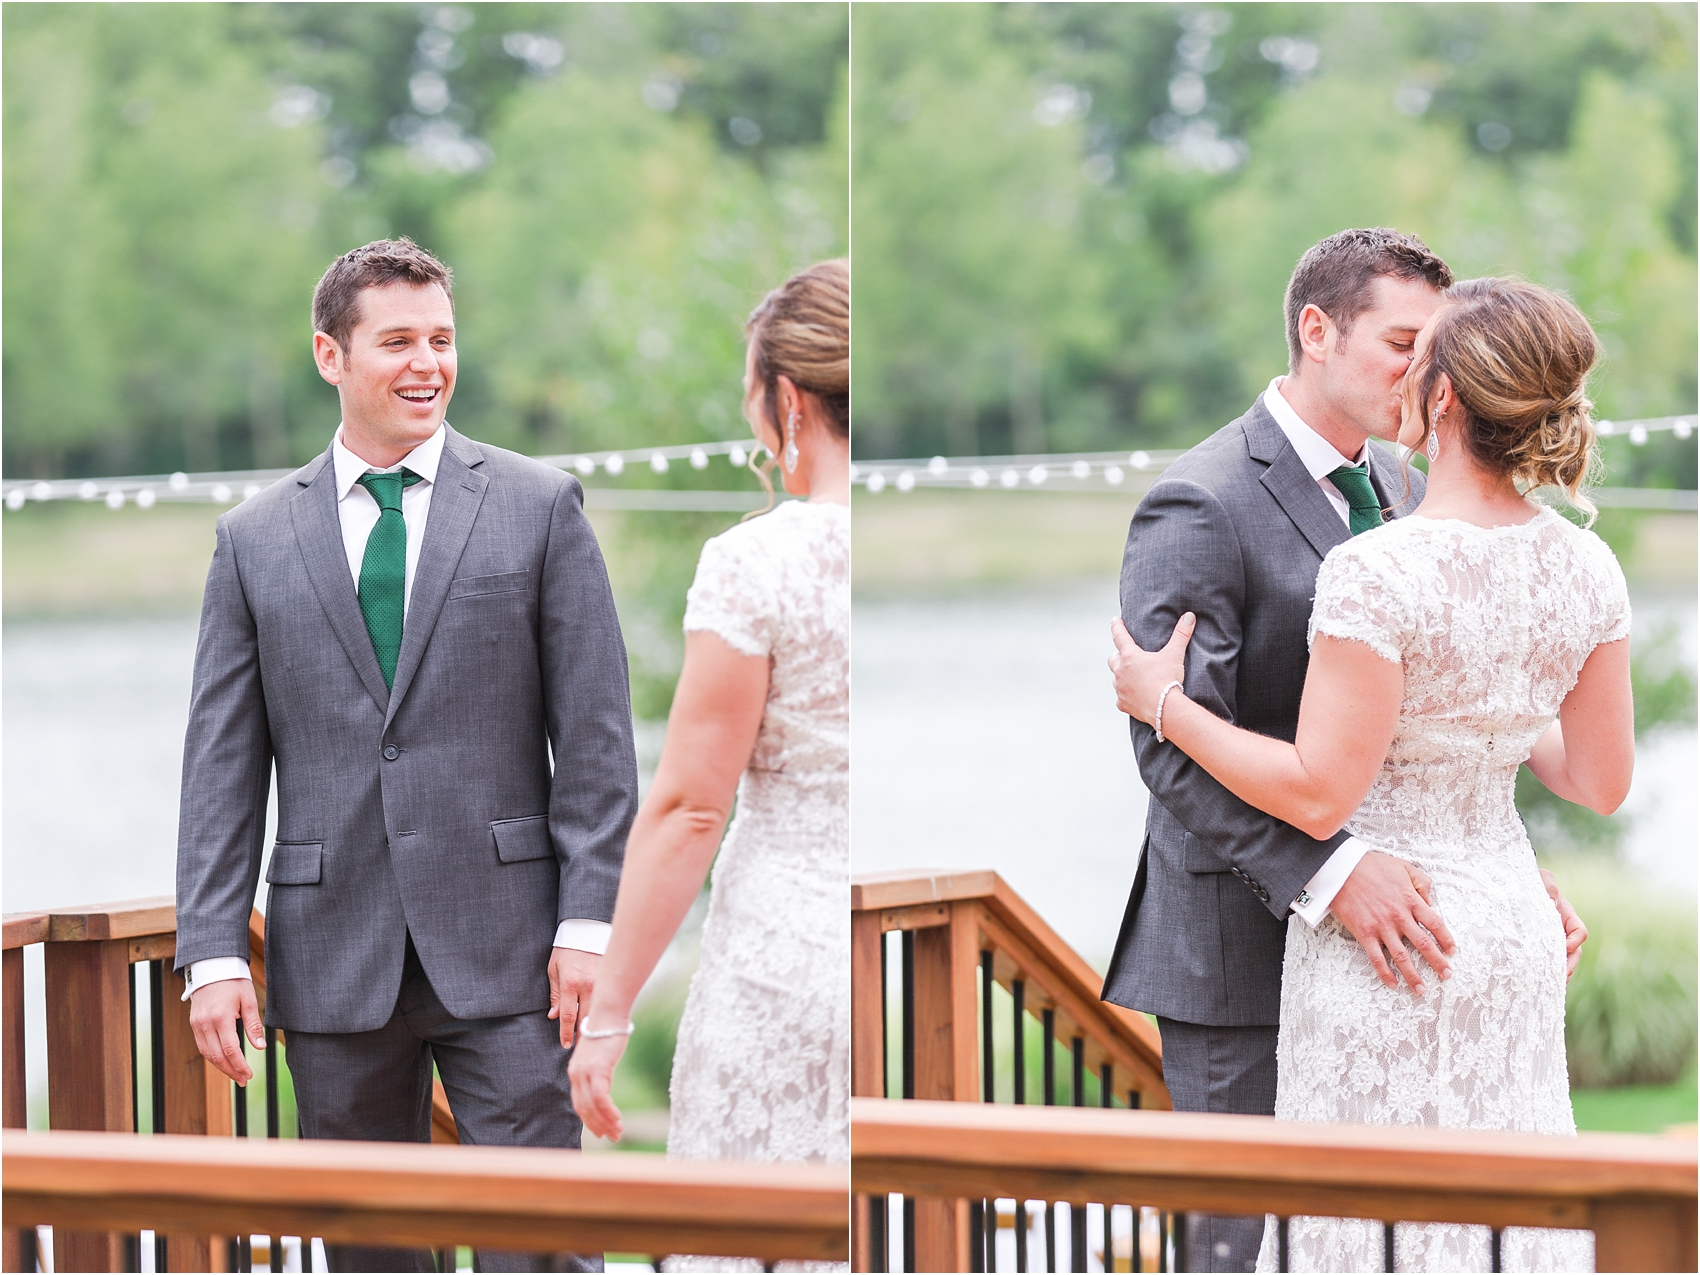 romantic-intimate-backyard-wedding-photos-at-private-estate-in-ann-arbor-mi-by-courtney-carolyn-photography_0025.jpg